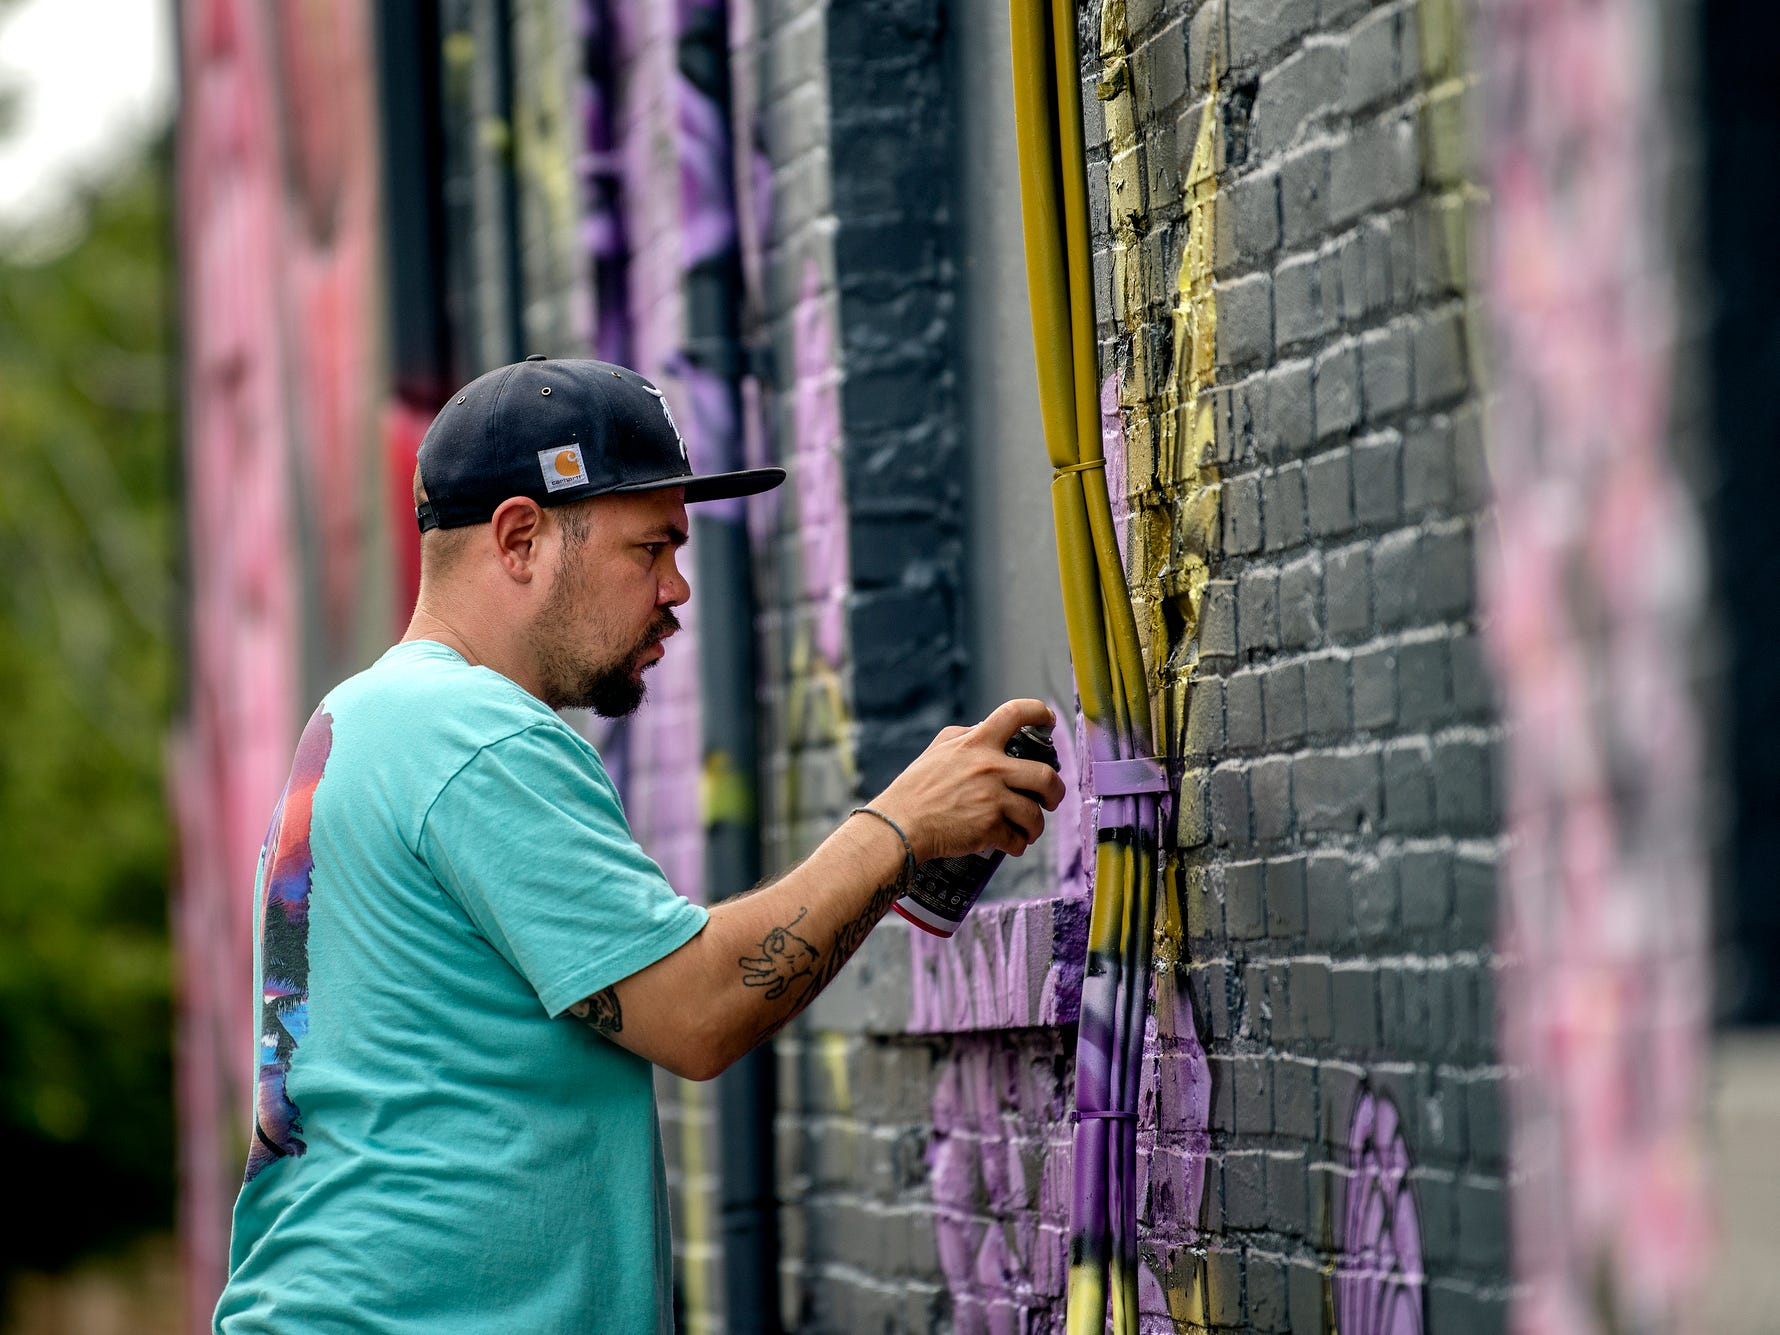 Chris Garcia, 34, of Holland, paints a mural on the side of Kean's Store on Thursday, Aug. 9, 2018, in downtown Mason.